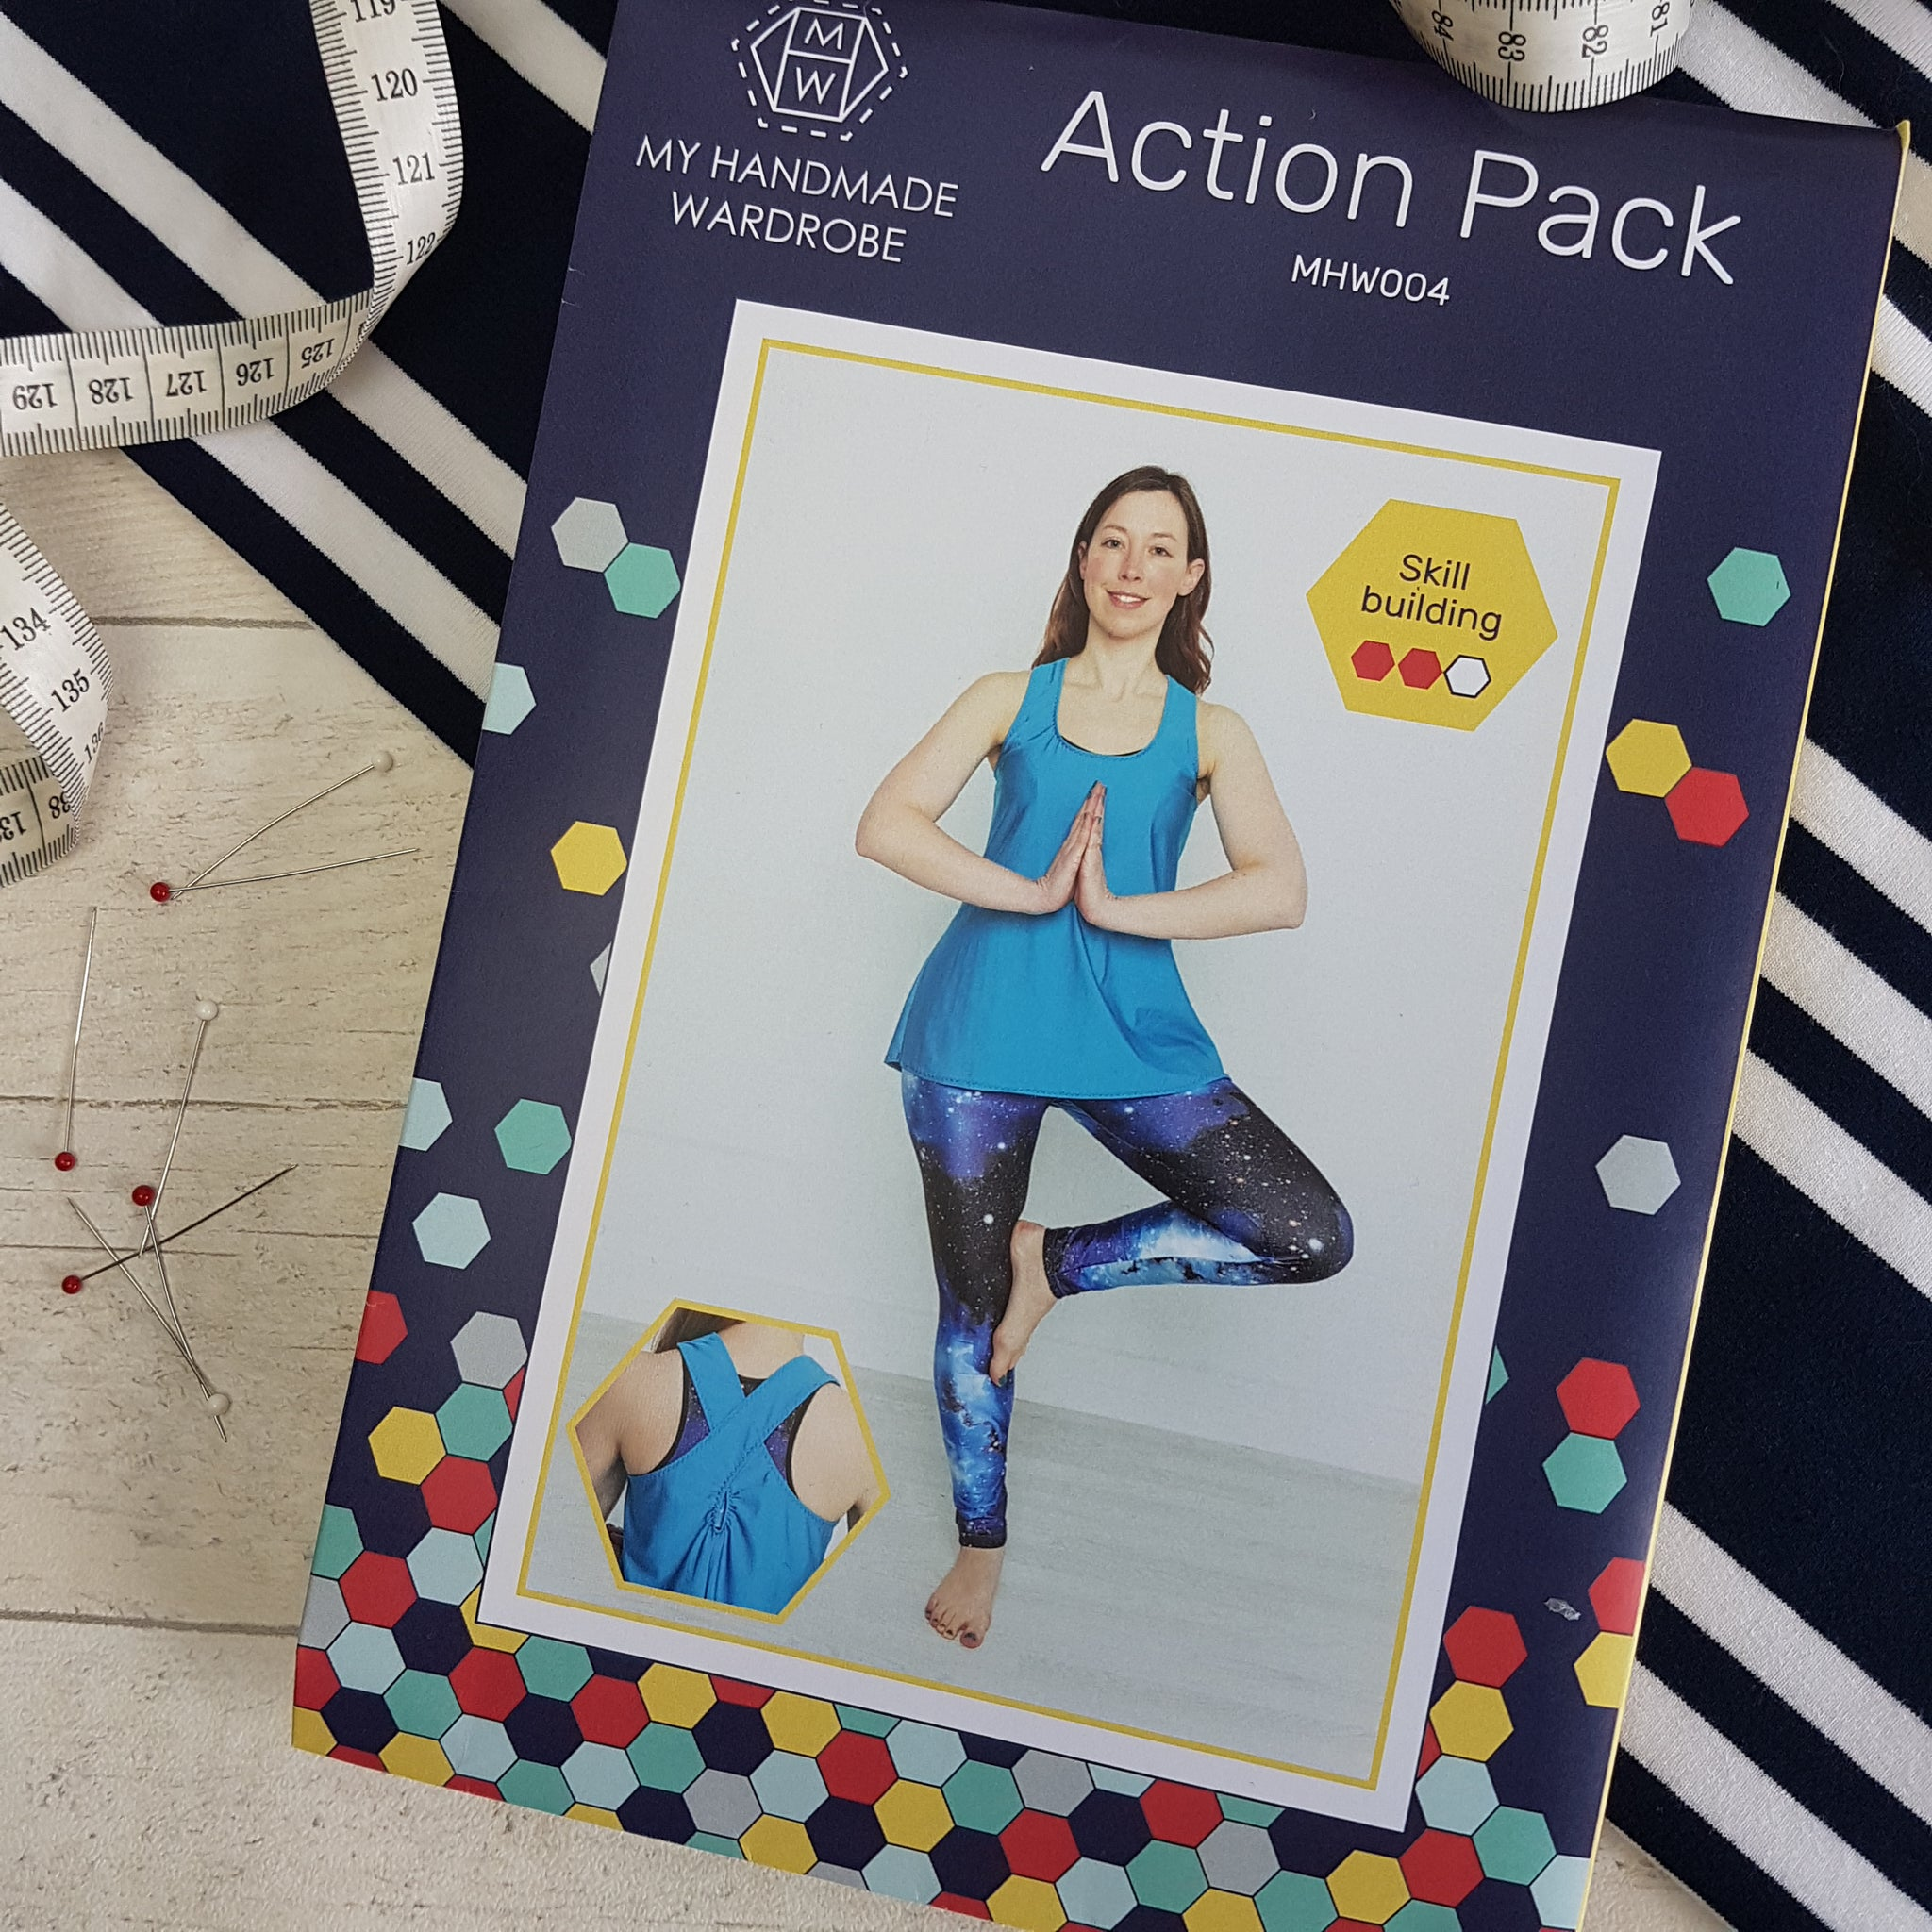 The Action Pack - My Handmade Wardrobe